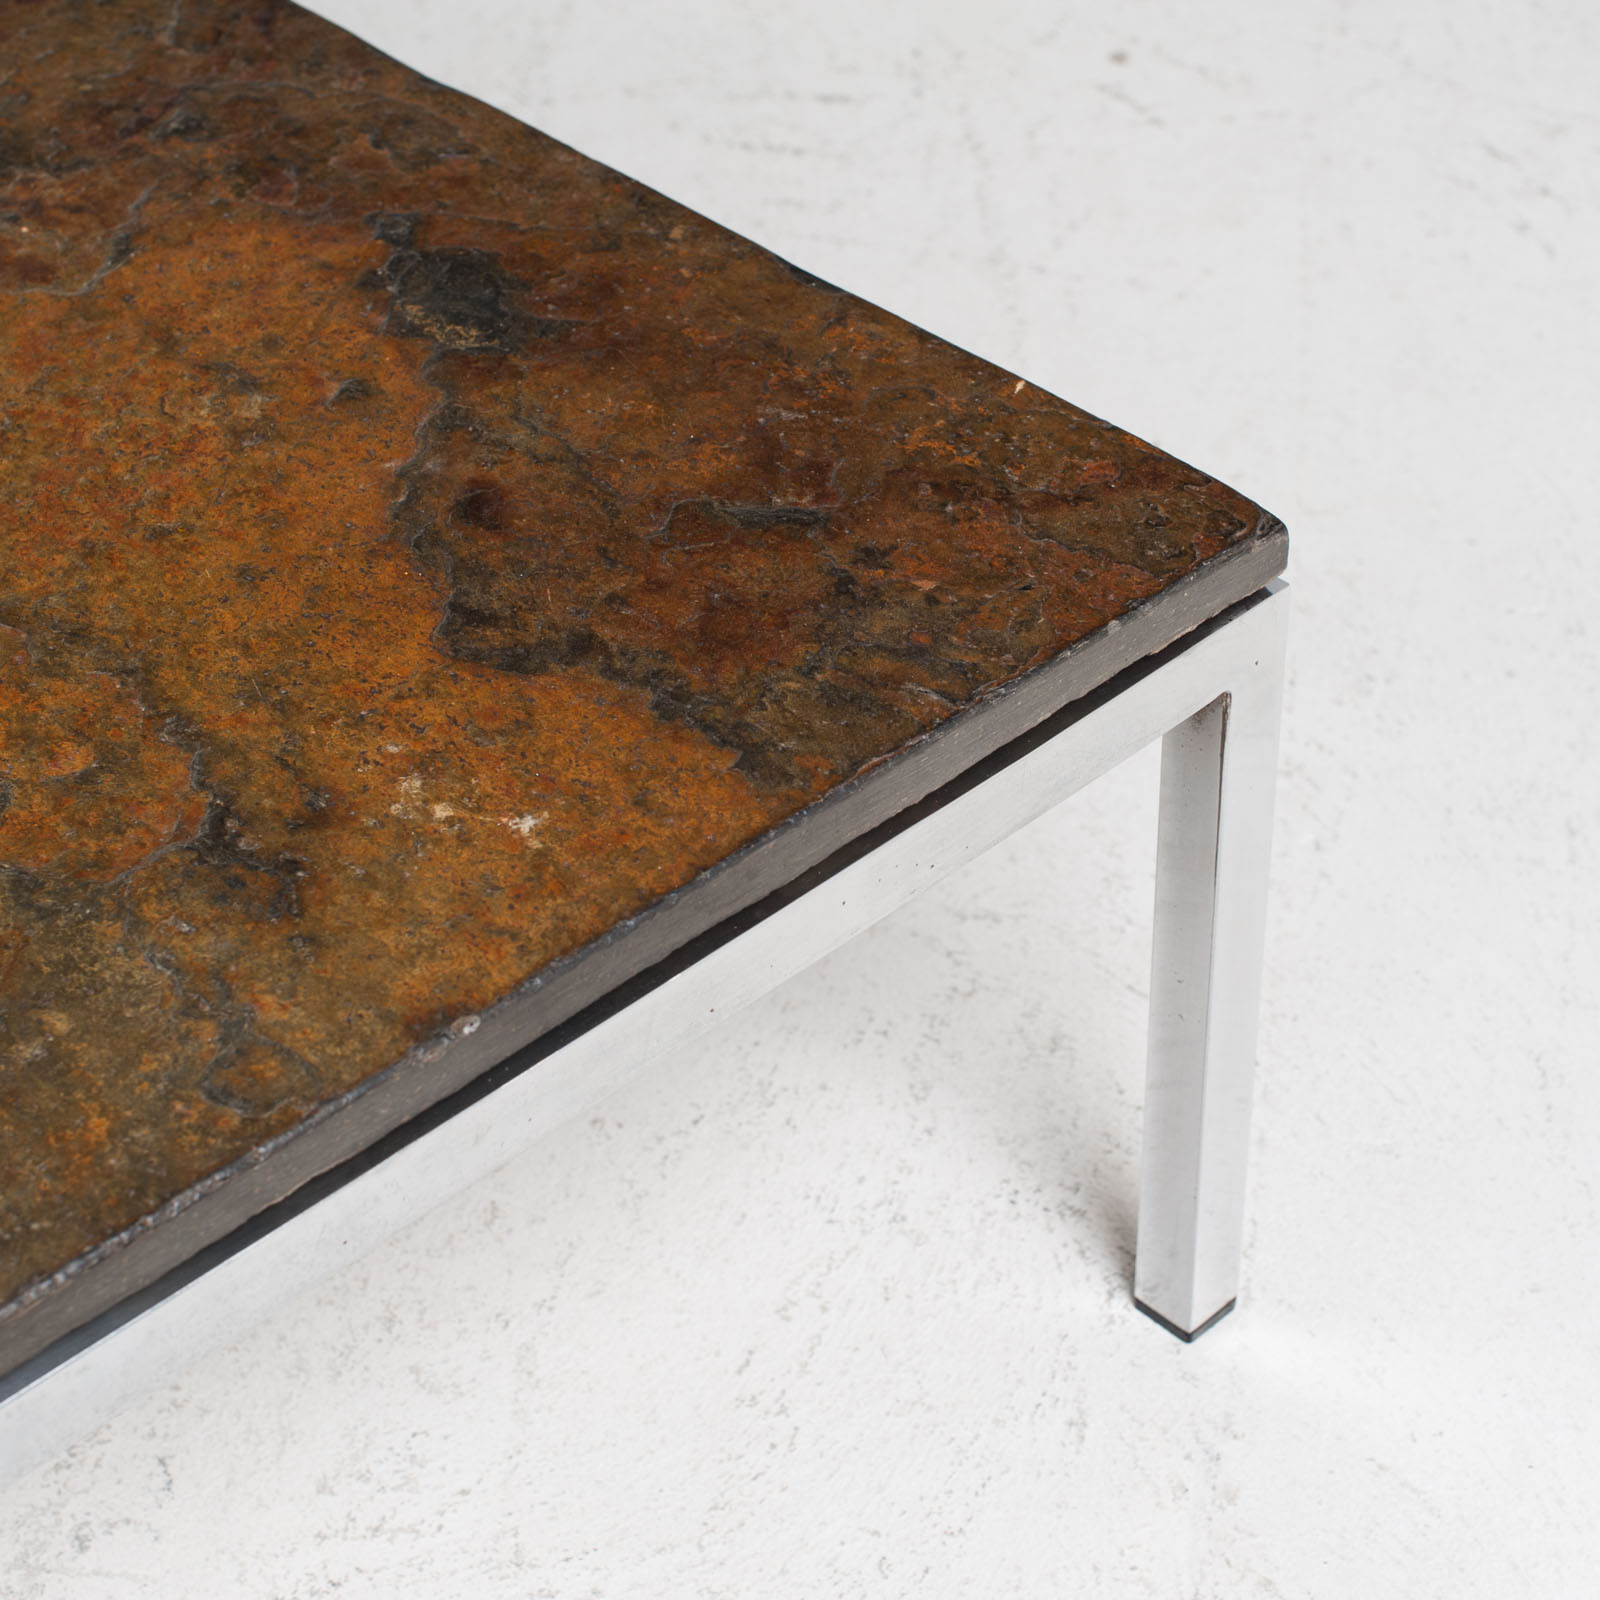 Rectangular Coffee Table With Slate And Chrome Base 1960s Netherlands 06